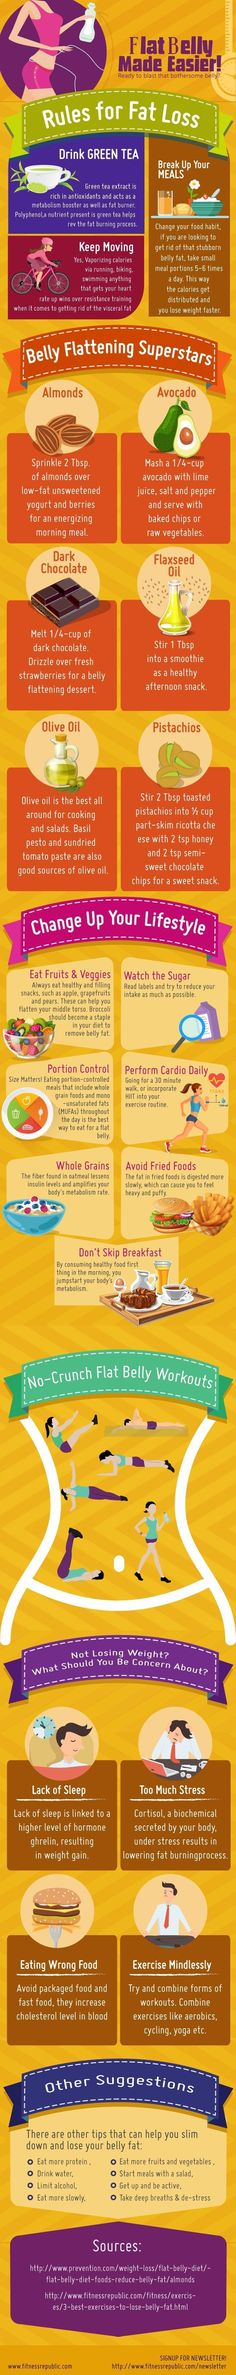 awesome Infographic: How To Attain A Flat Belly